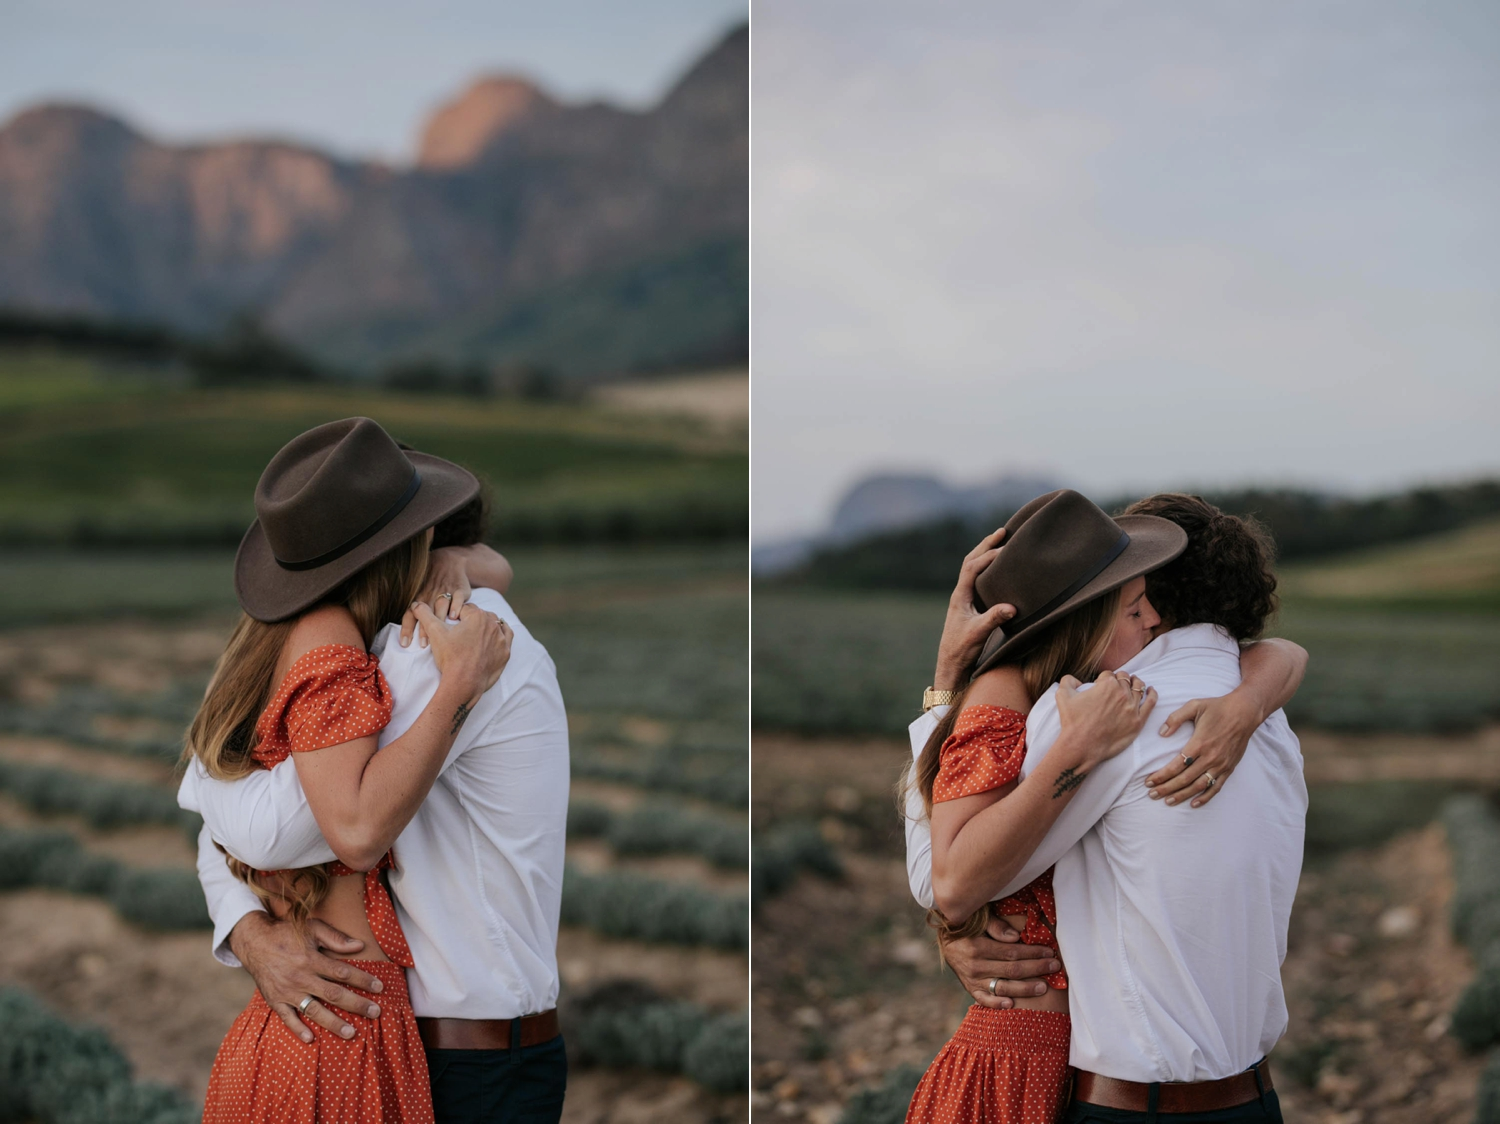 Boho Gypsy Couple Engagement Shoot Hug In Babylonstoren Farm Fields Below Mountains